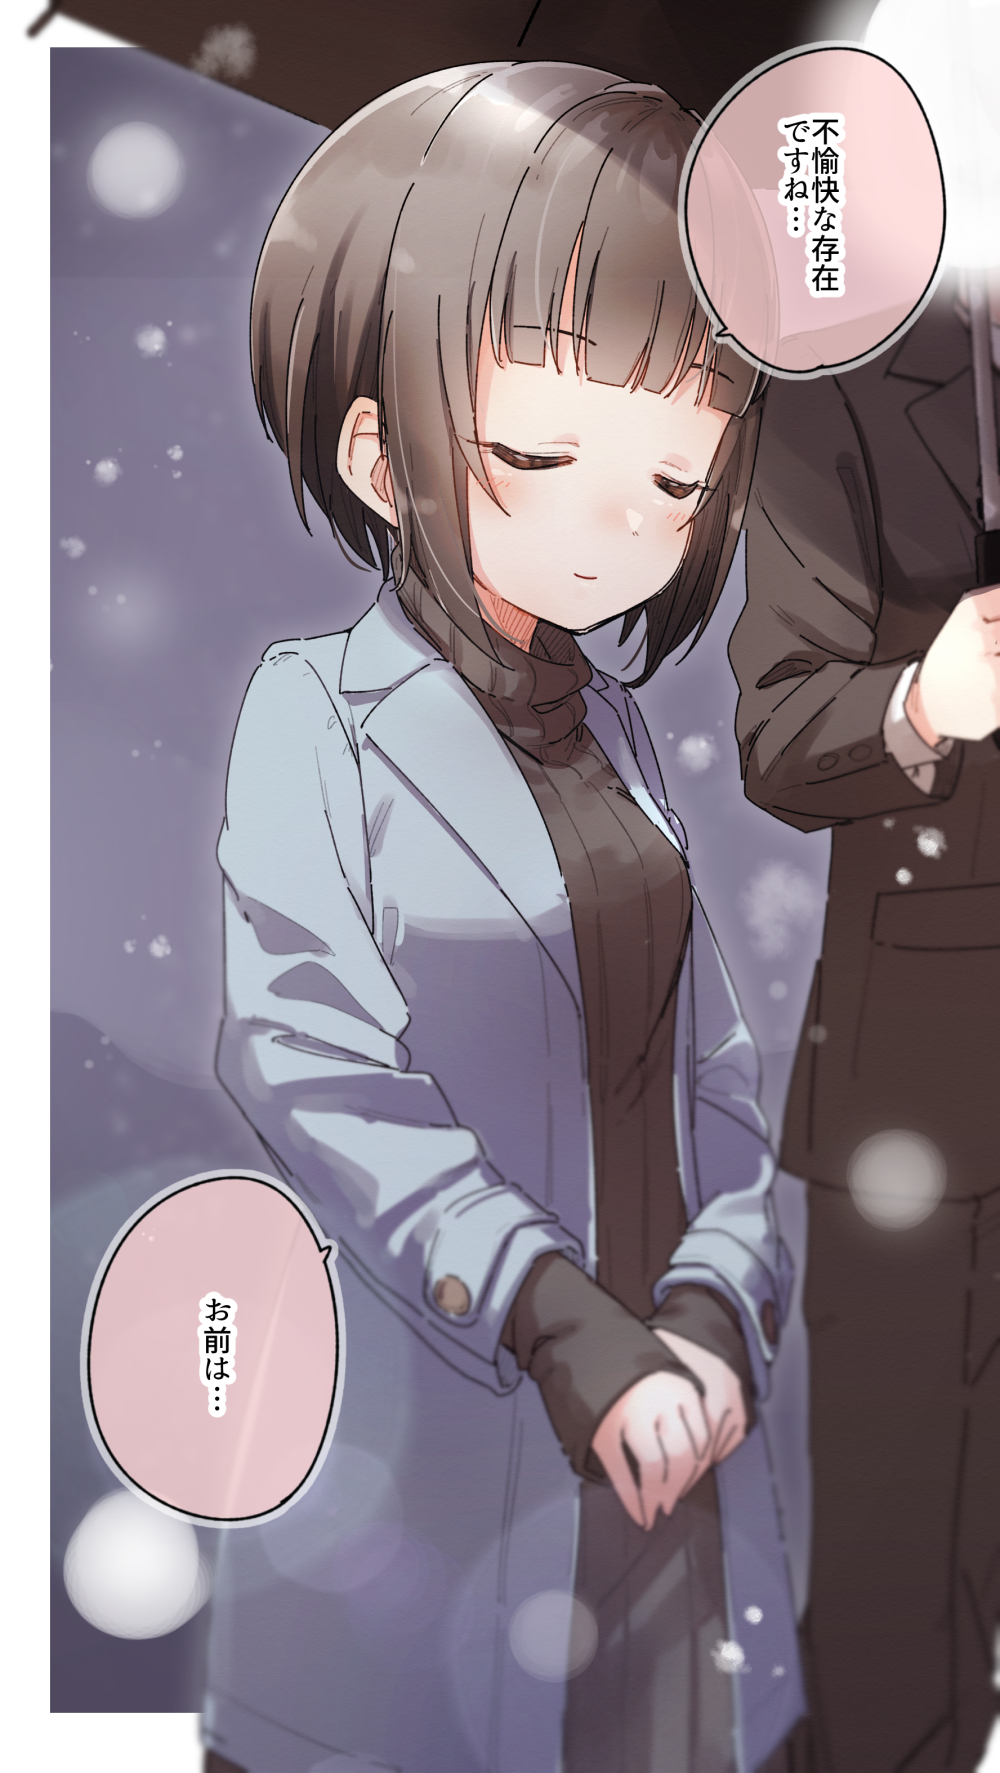 1girl bangs black_hair black_jacket black_pants black_sweater blue_coat blunt_bangs blush closed_eyes closed_mouth coat eyebrows_visible_through_hair formal highres idolmaster idolmaster_cinderella_girls jacket long_sleeves open_clothes open_coat pants ribbed_sweater shirayuki_chiyo short_hair sleeves_past_wrists smile snowing solo_focus suit sweater translation_request turtleneck turtleneck_sweater yukie_(kusaka_shi)